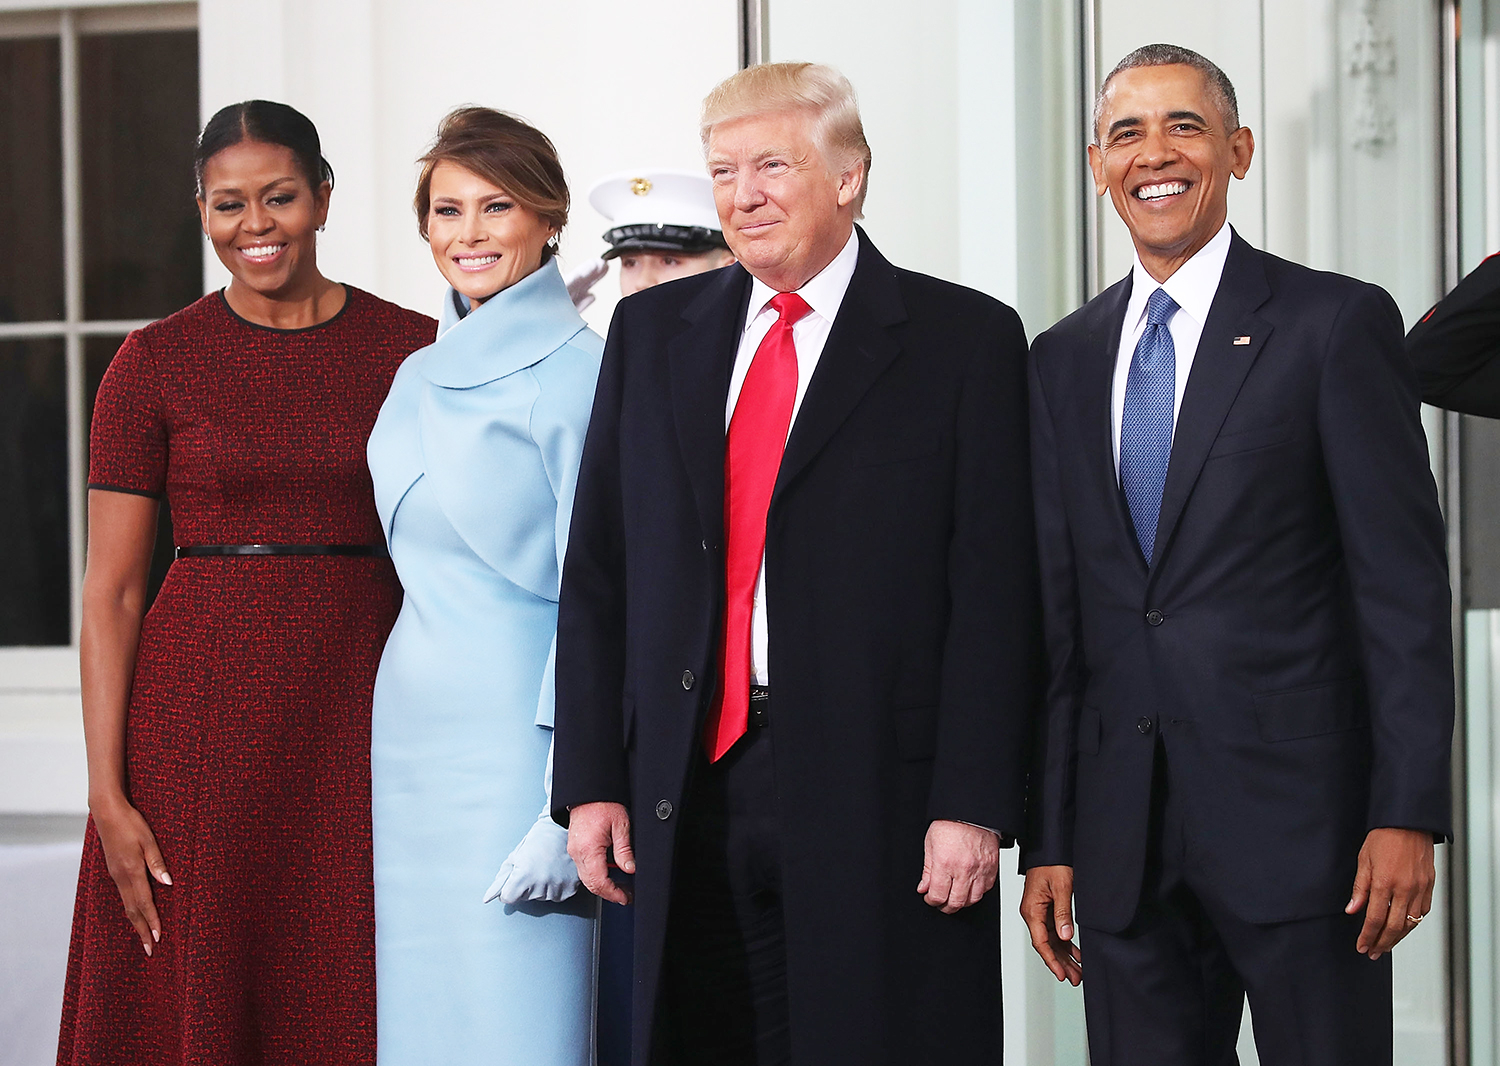 Donald Trump,and Melania Trump, are greeted by President Barack Obama and first lady Michelle Obama, upon arriving at the White House on January 20, 2017 in Washington, DC.